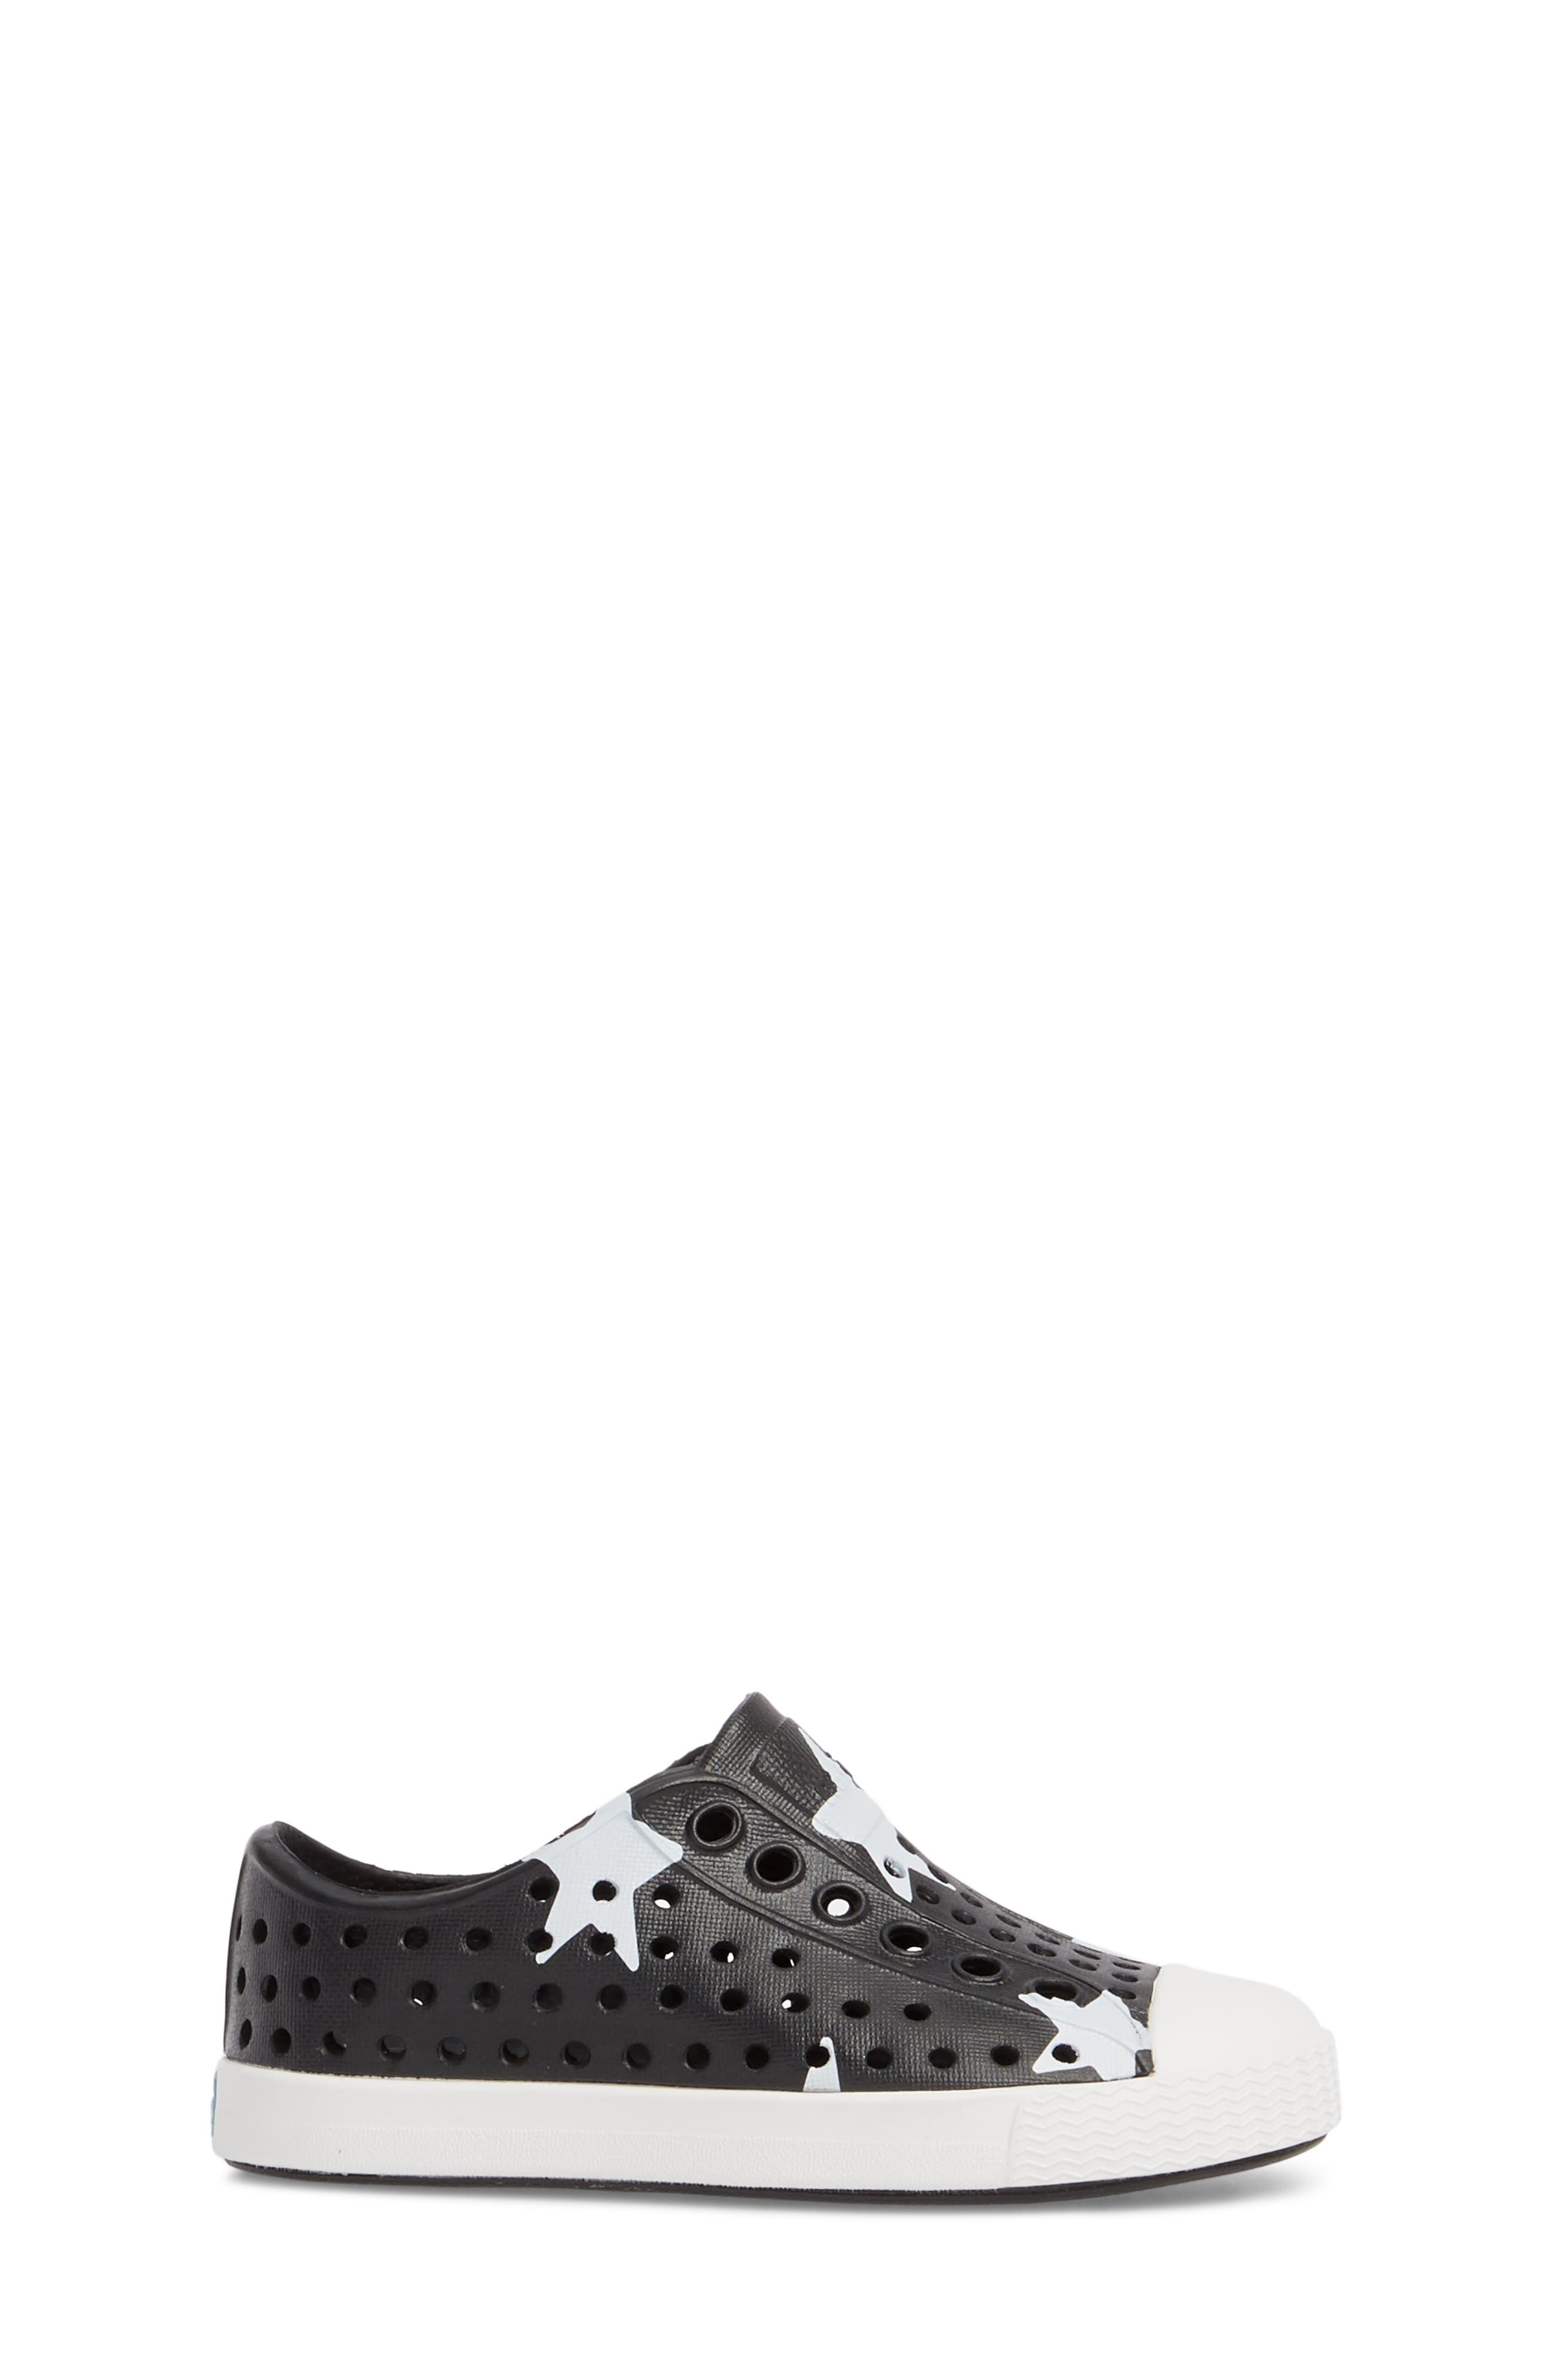 NATIVE SHOES, Jefferson Quartz Slip-On Sneaker, Alternate thumbnail 3, color, JIFFY BLACK/ WHITE/ STAR